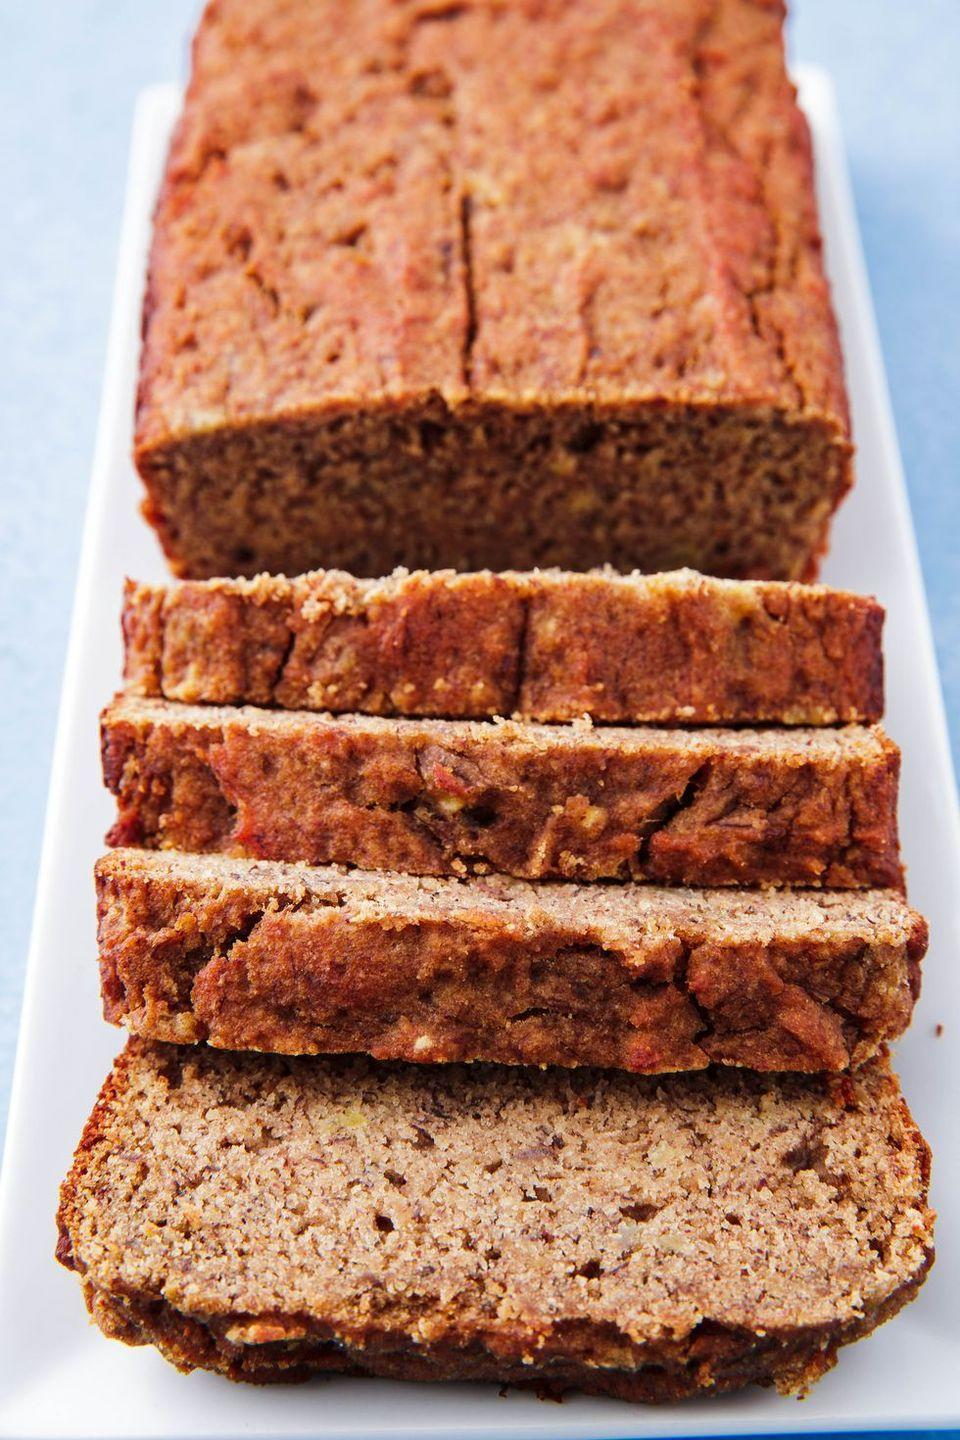 "<p>Slightly sweet and jam-packed with banana flavor.</p><p>Get the recipe from <a href=""https://www.delish.com/cooking/recipe-ideas/a25349771/best-paleo-banana-bread-recipe/"" rel=""nofollow noopener"" target=""_blank"" data-ylk=""slk:Delish"" class=""link rapid-noclick-resp"">Delish</a>. </p>"